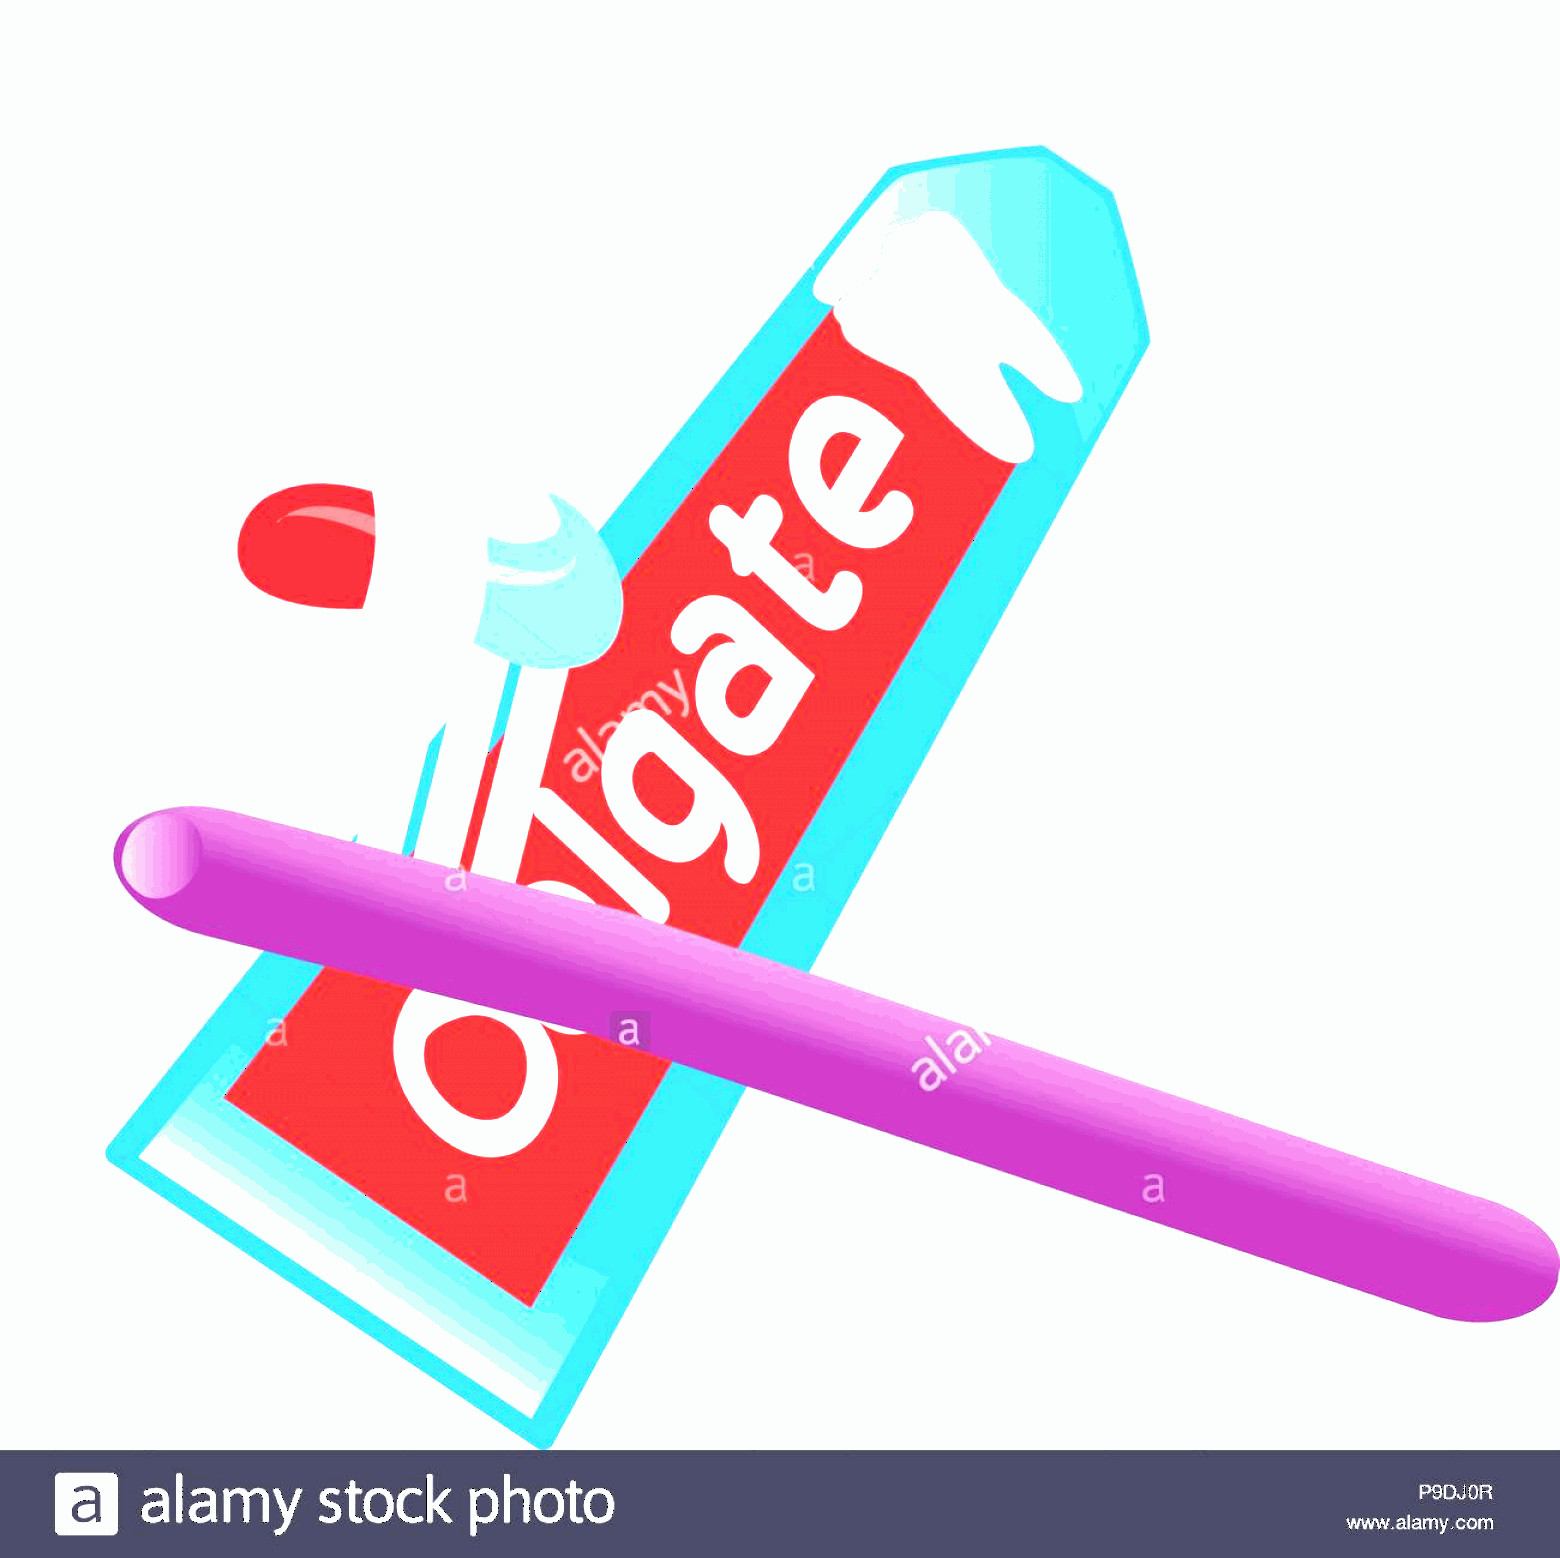 Toothpaste Cartoon Vector: Cartoon Vector Illustration Of Toothpaste And Toothbrush Image